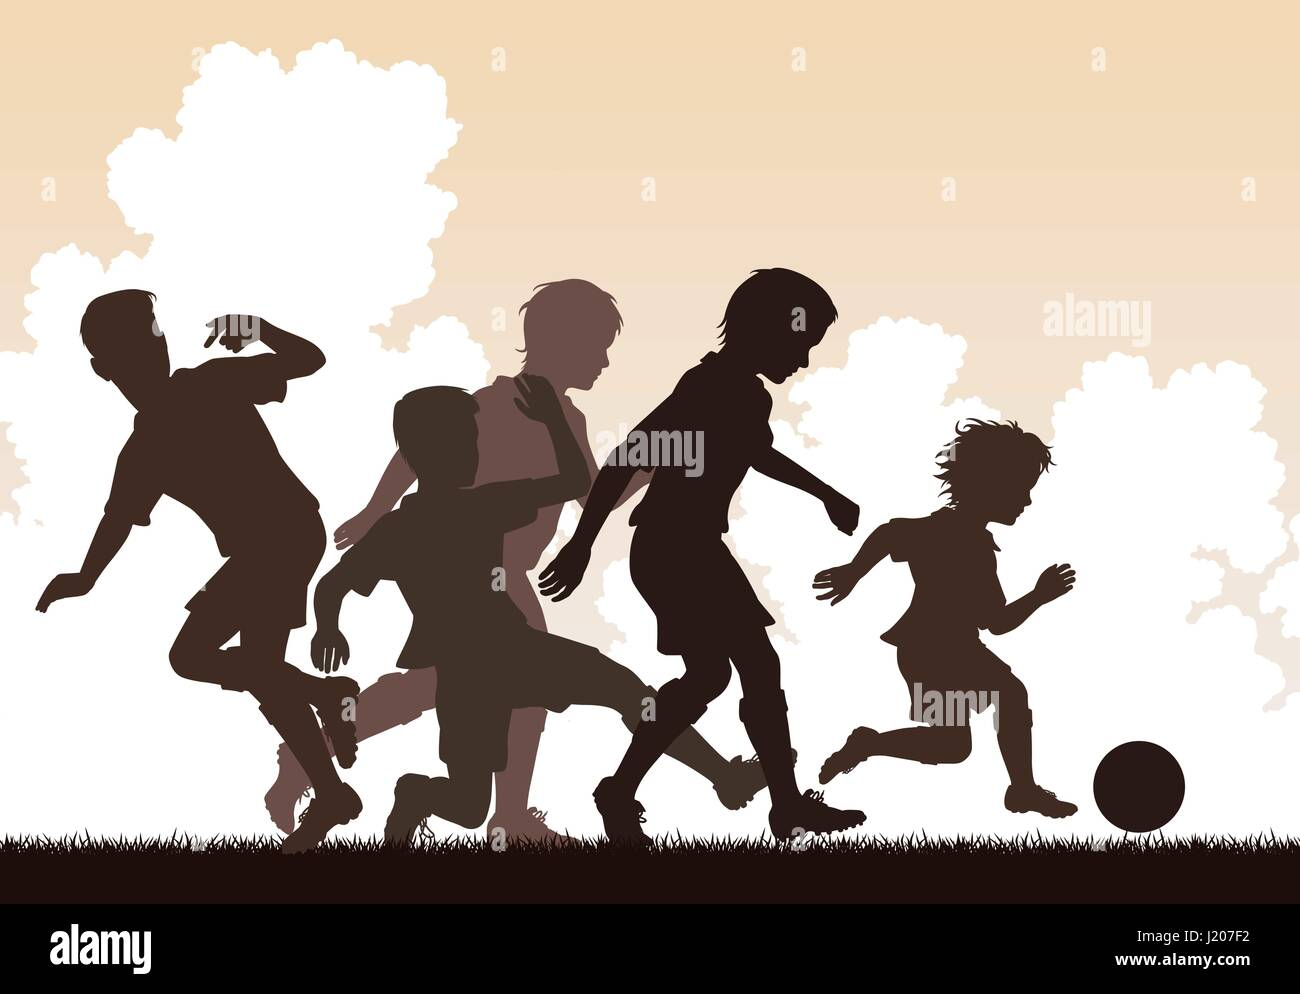 Editable vector illustration of a young boy beating older boys at football Stock Vector